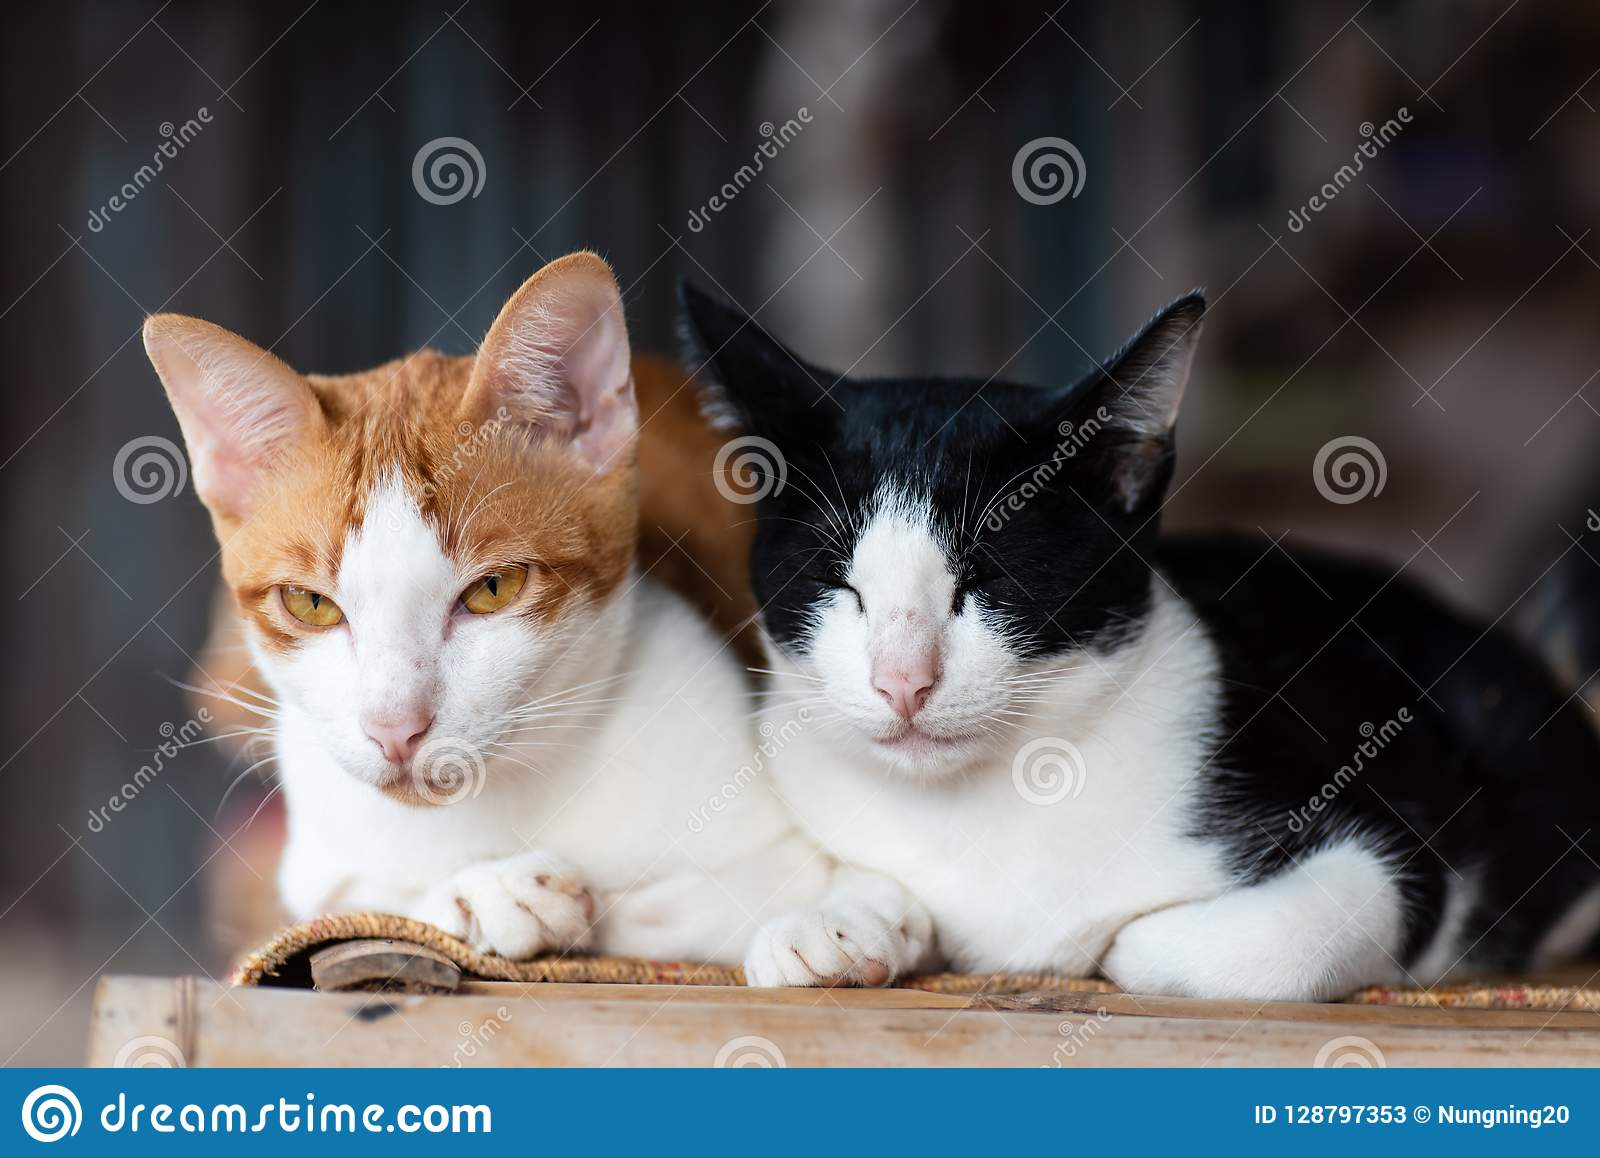 Two Cats Are Sitting Together On The Mat Stock Image , Image